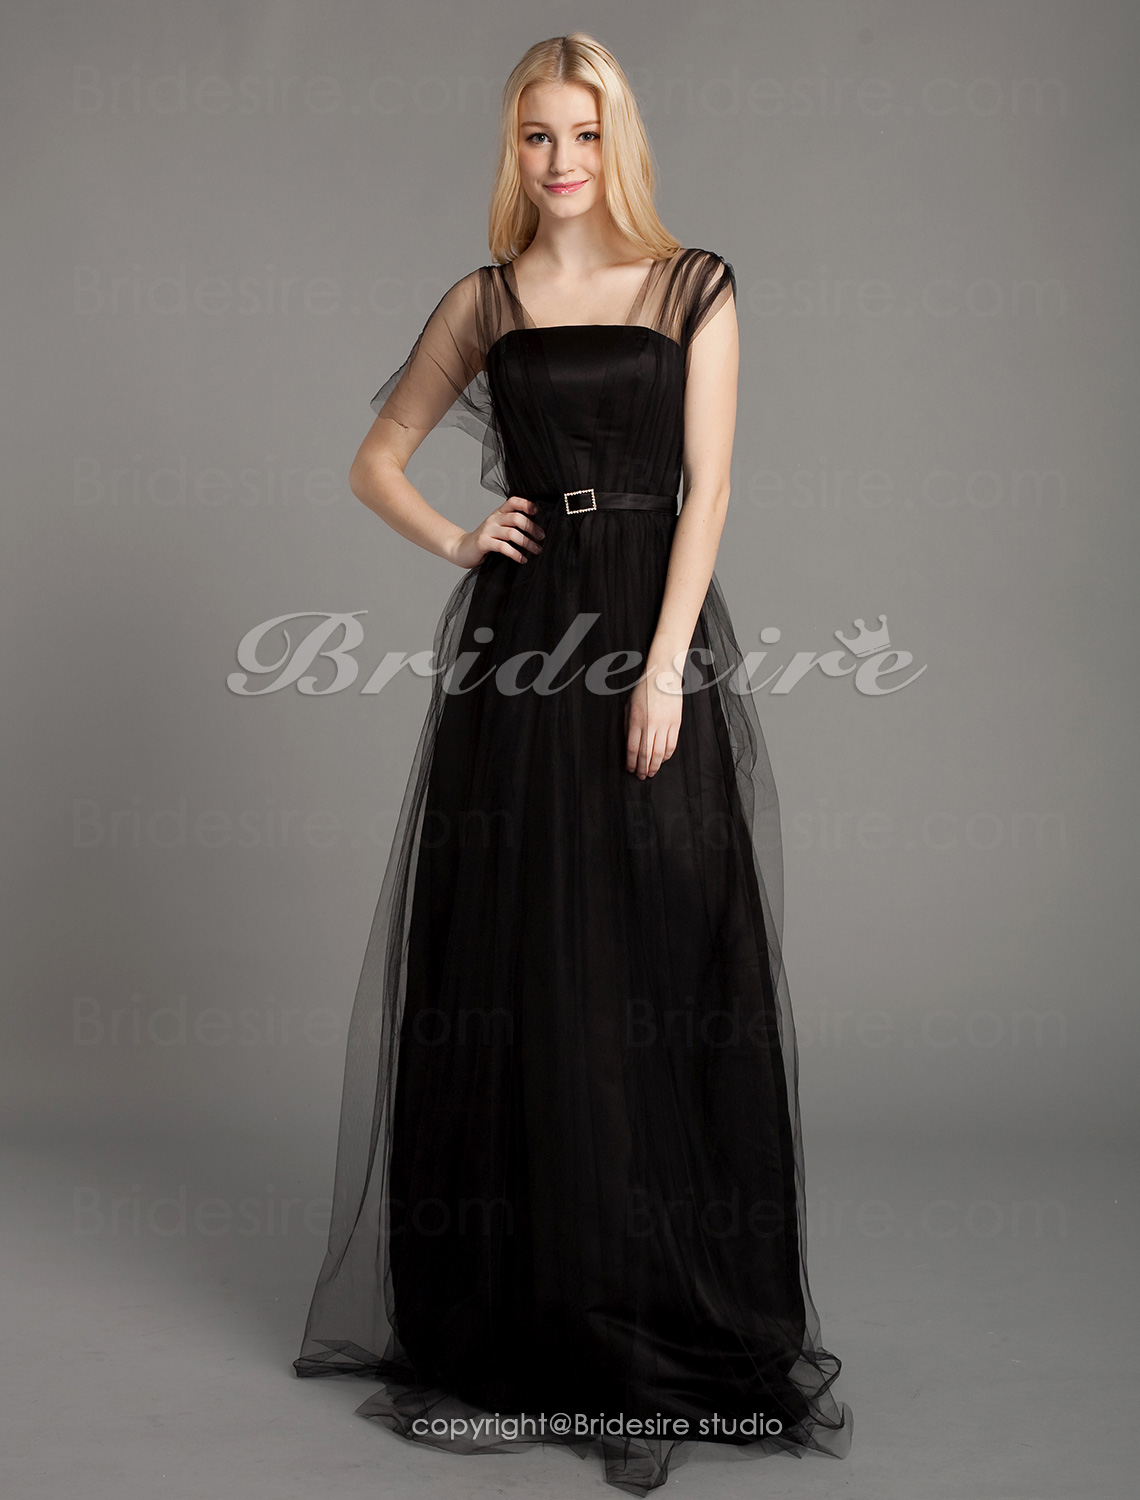 Sheath/Column Straps Tulle And Satin Floor-length Bridesmaid Dress